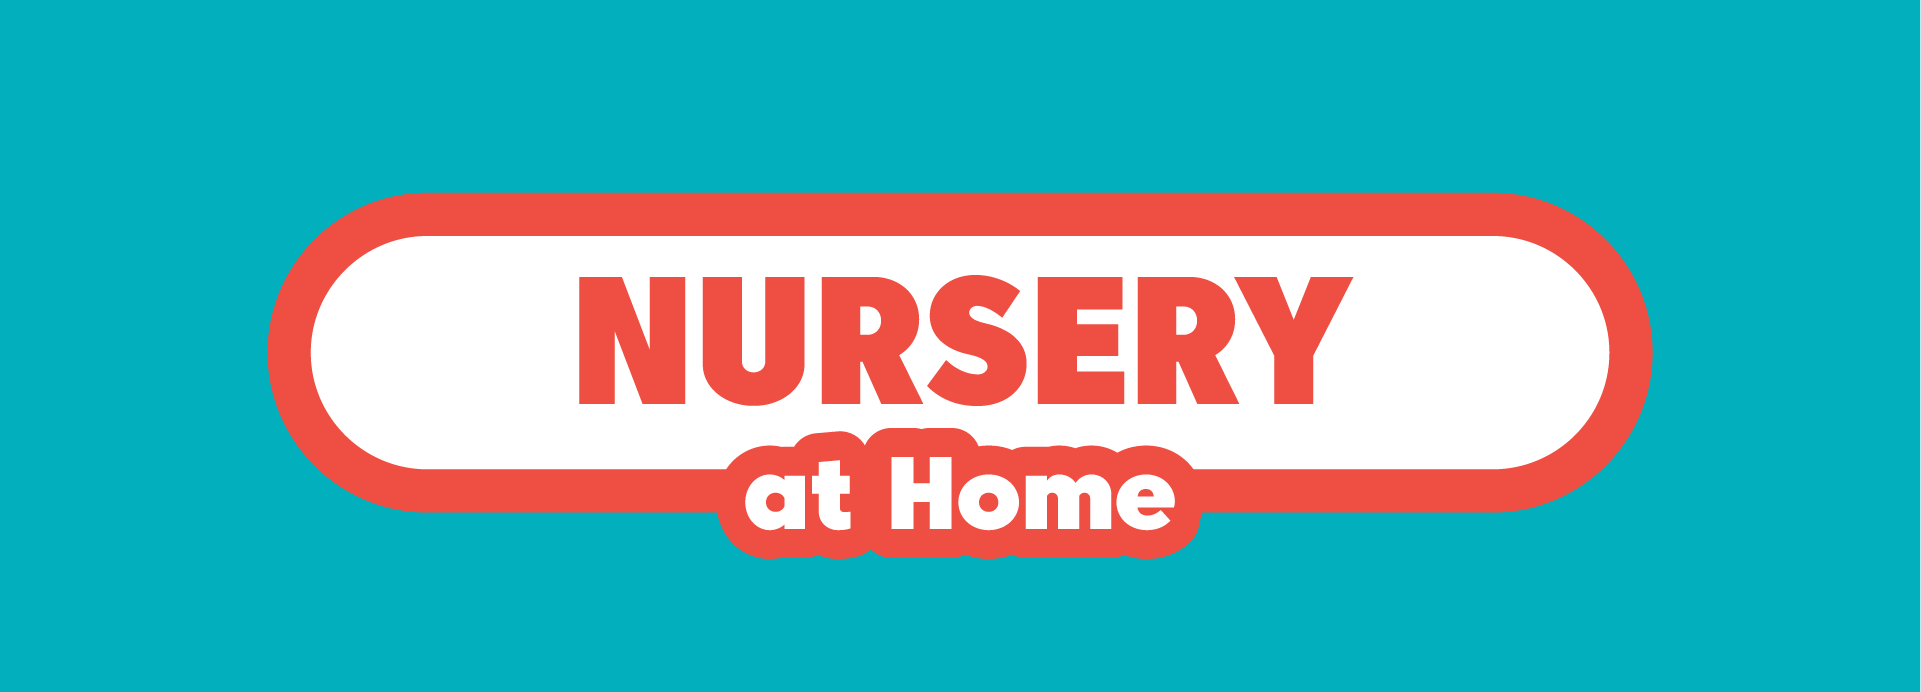 Nursery At Home